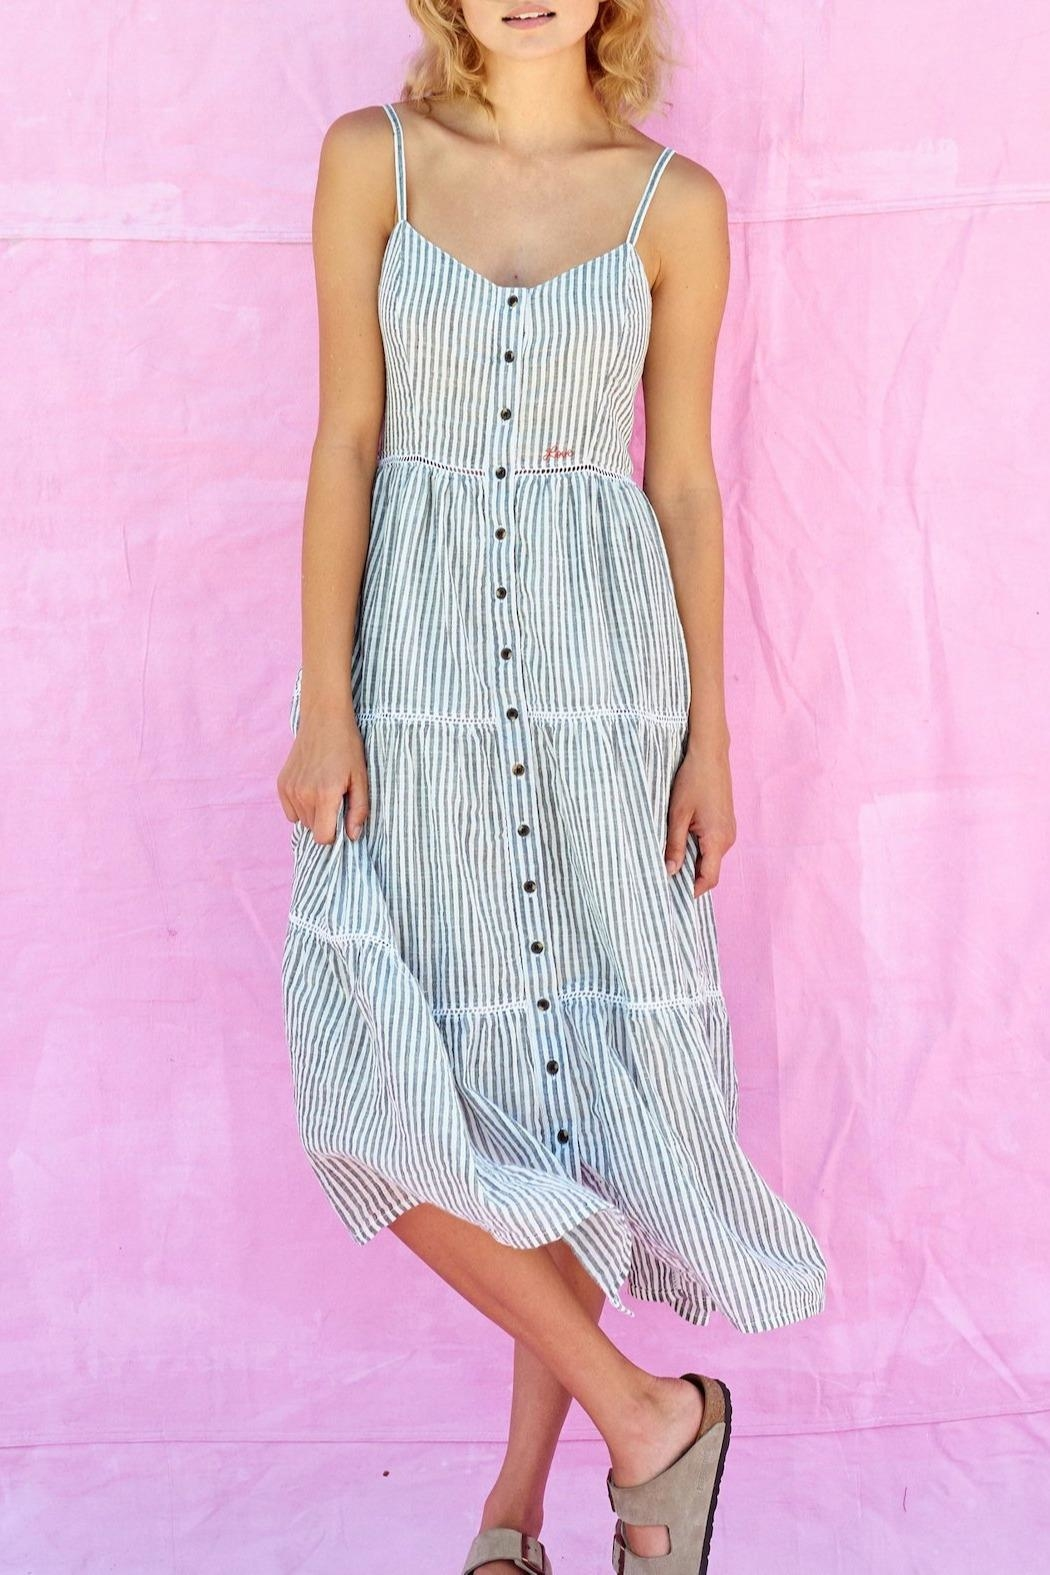 Sundry Love Tiered Sundress - Front Cropped Image